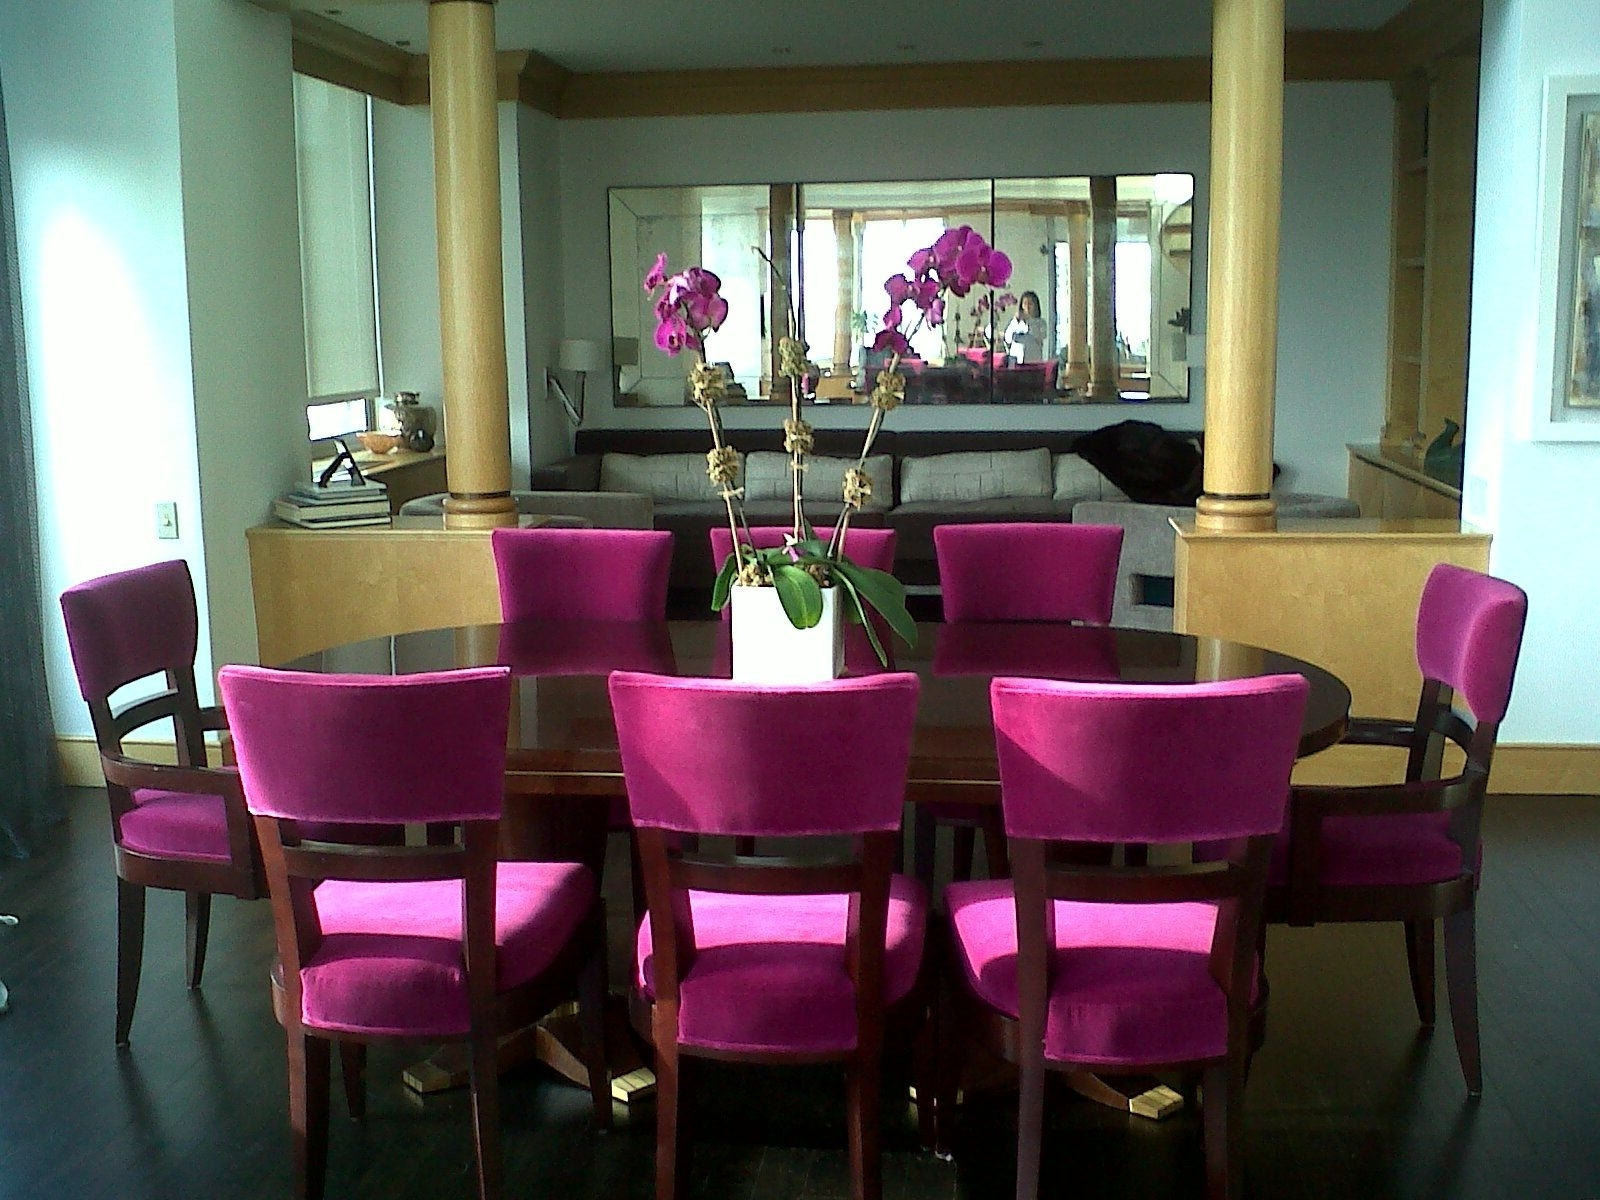 Dining Tables And Purple Chairs Within Most Popular Wonderful Purple Dining Room Sets With Oval Wooden Dining Table And (View 4 of 25)